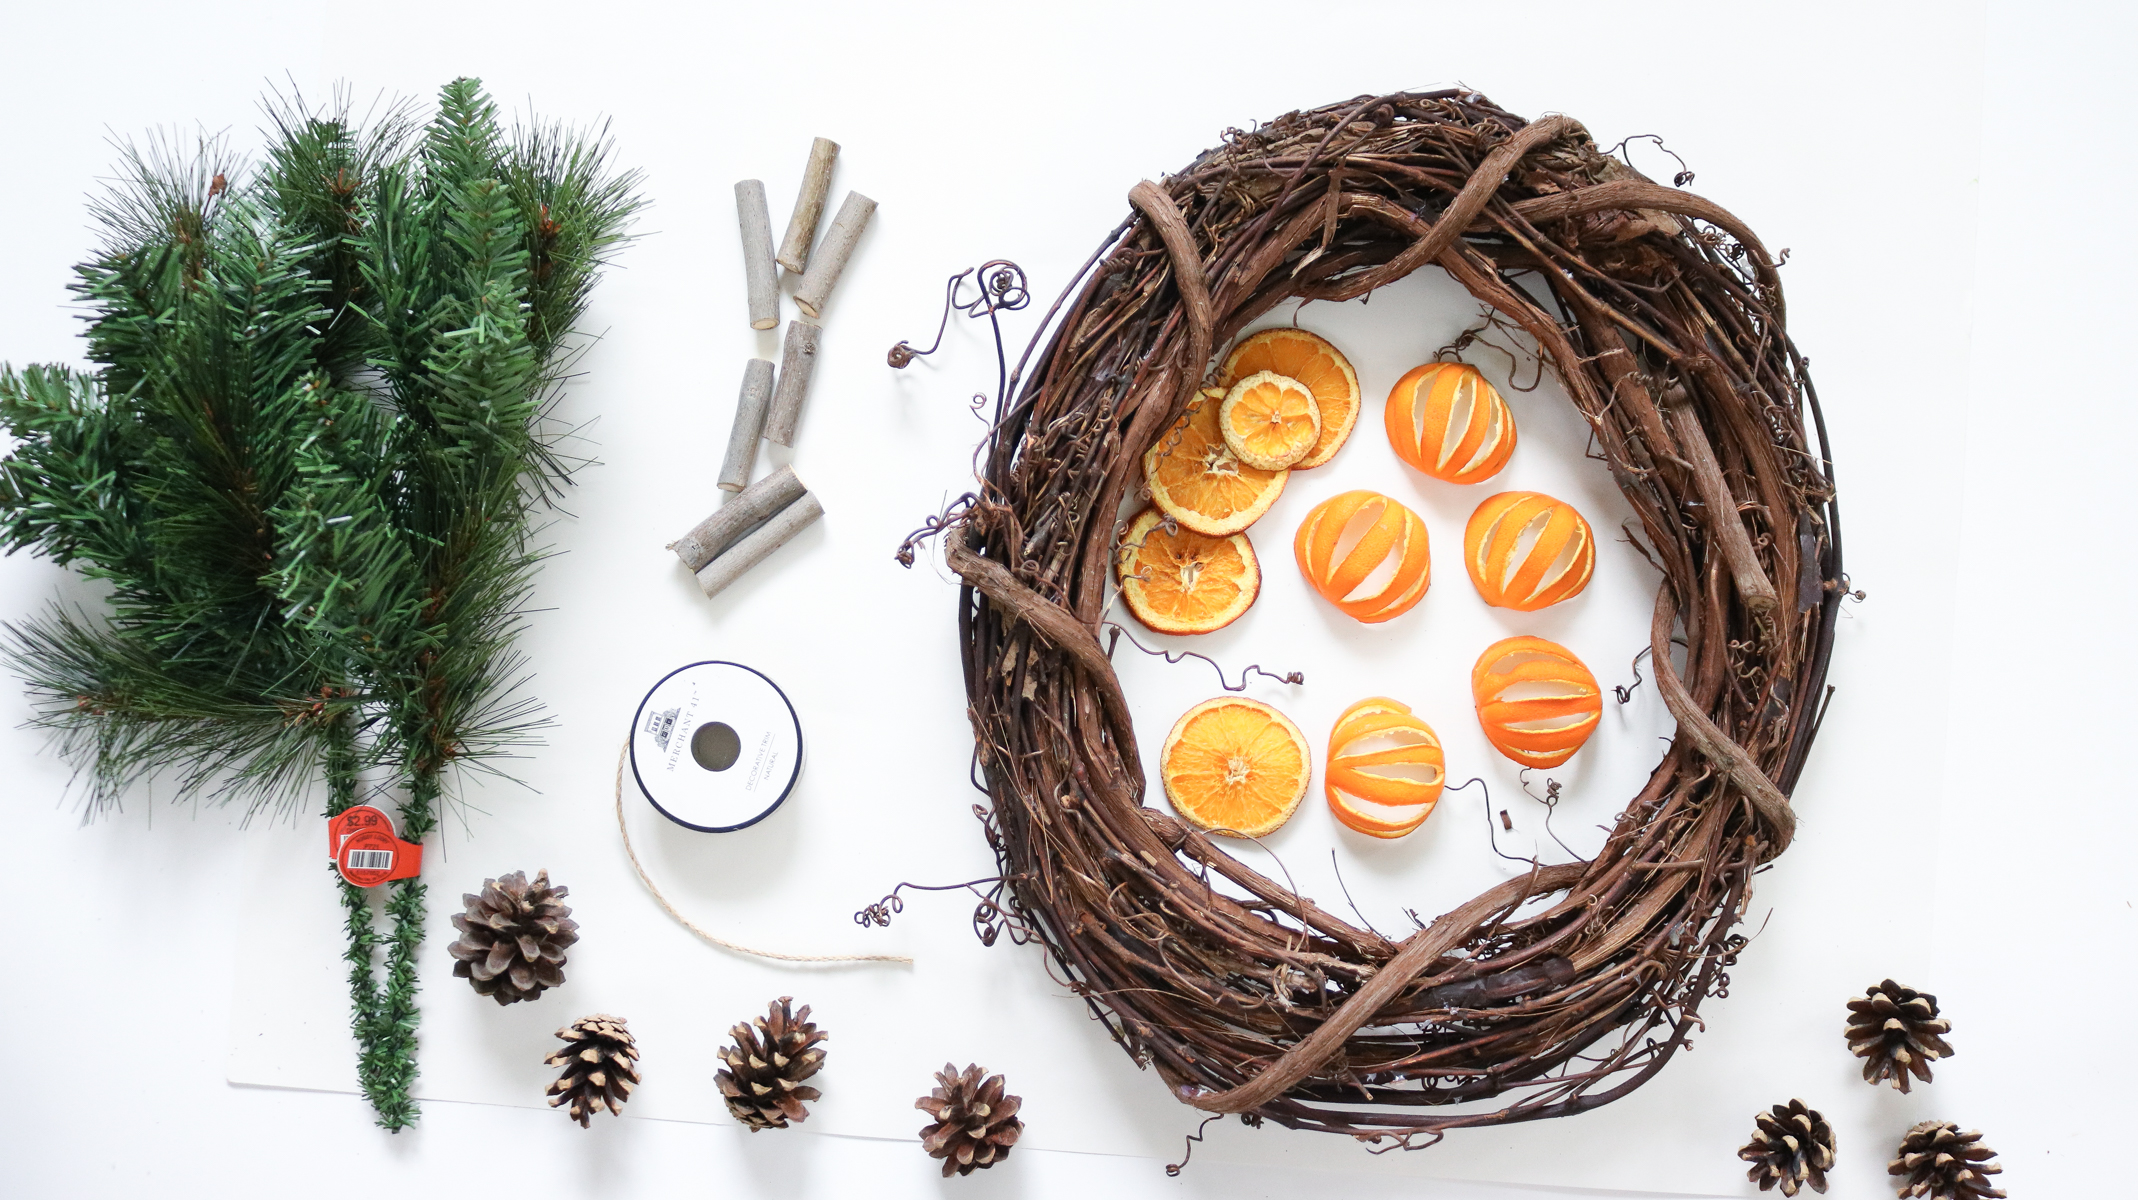 supplies needed for citrus wreath